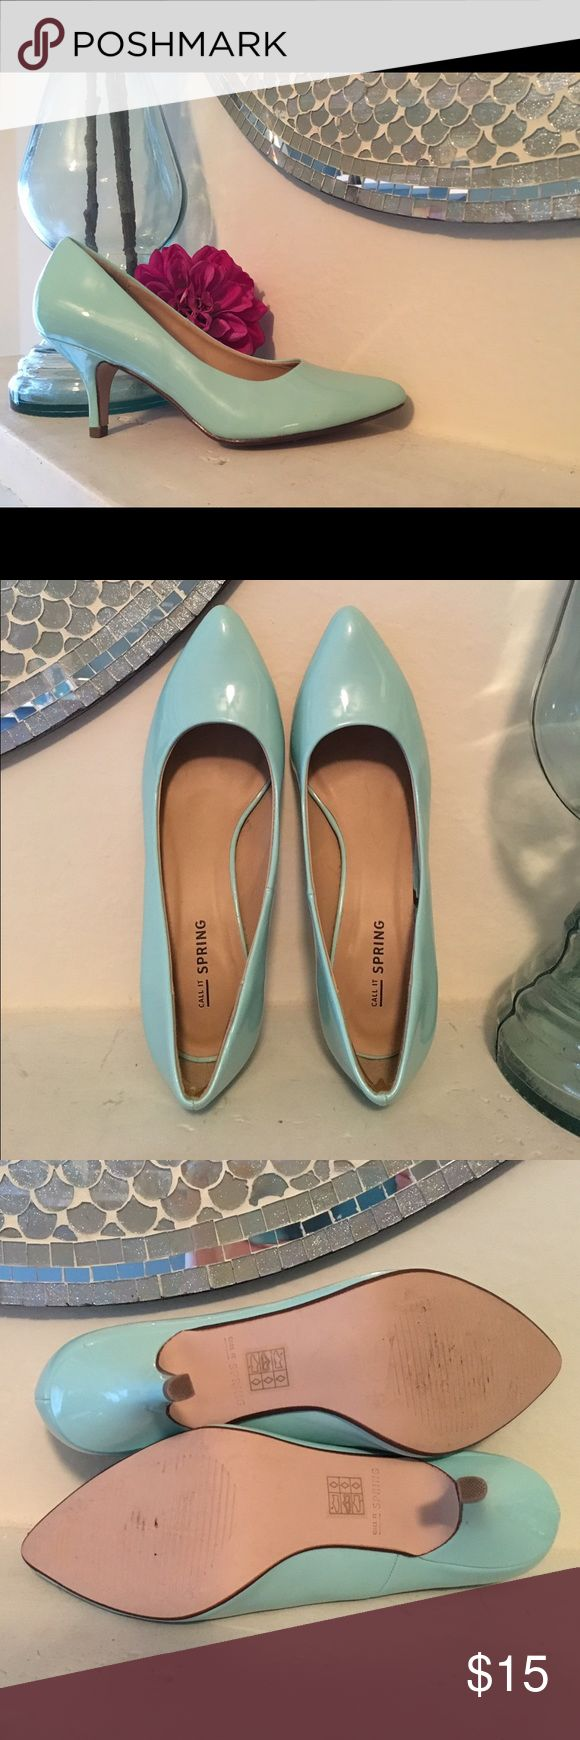 Call it Spring Aqua Heels Excellent condition (worn once). Aqua heel with slightly pointed toe. No scuffs or marks. Call It Spring Shoes Heels